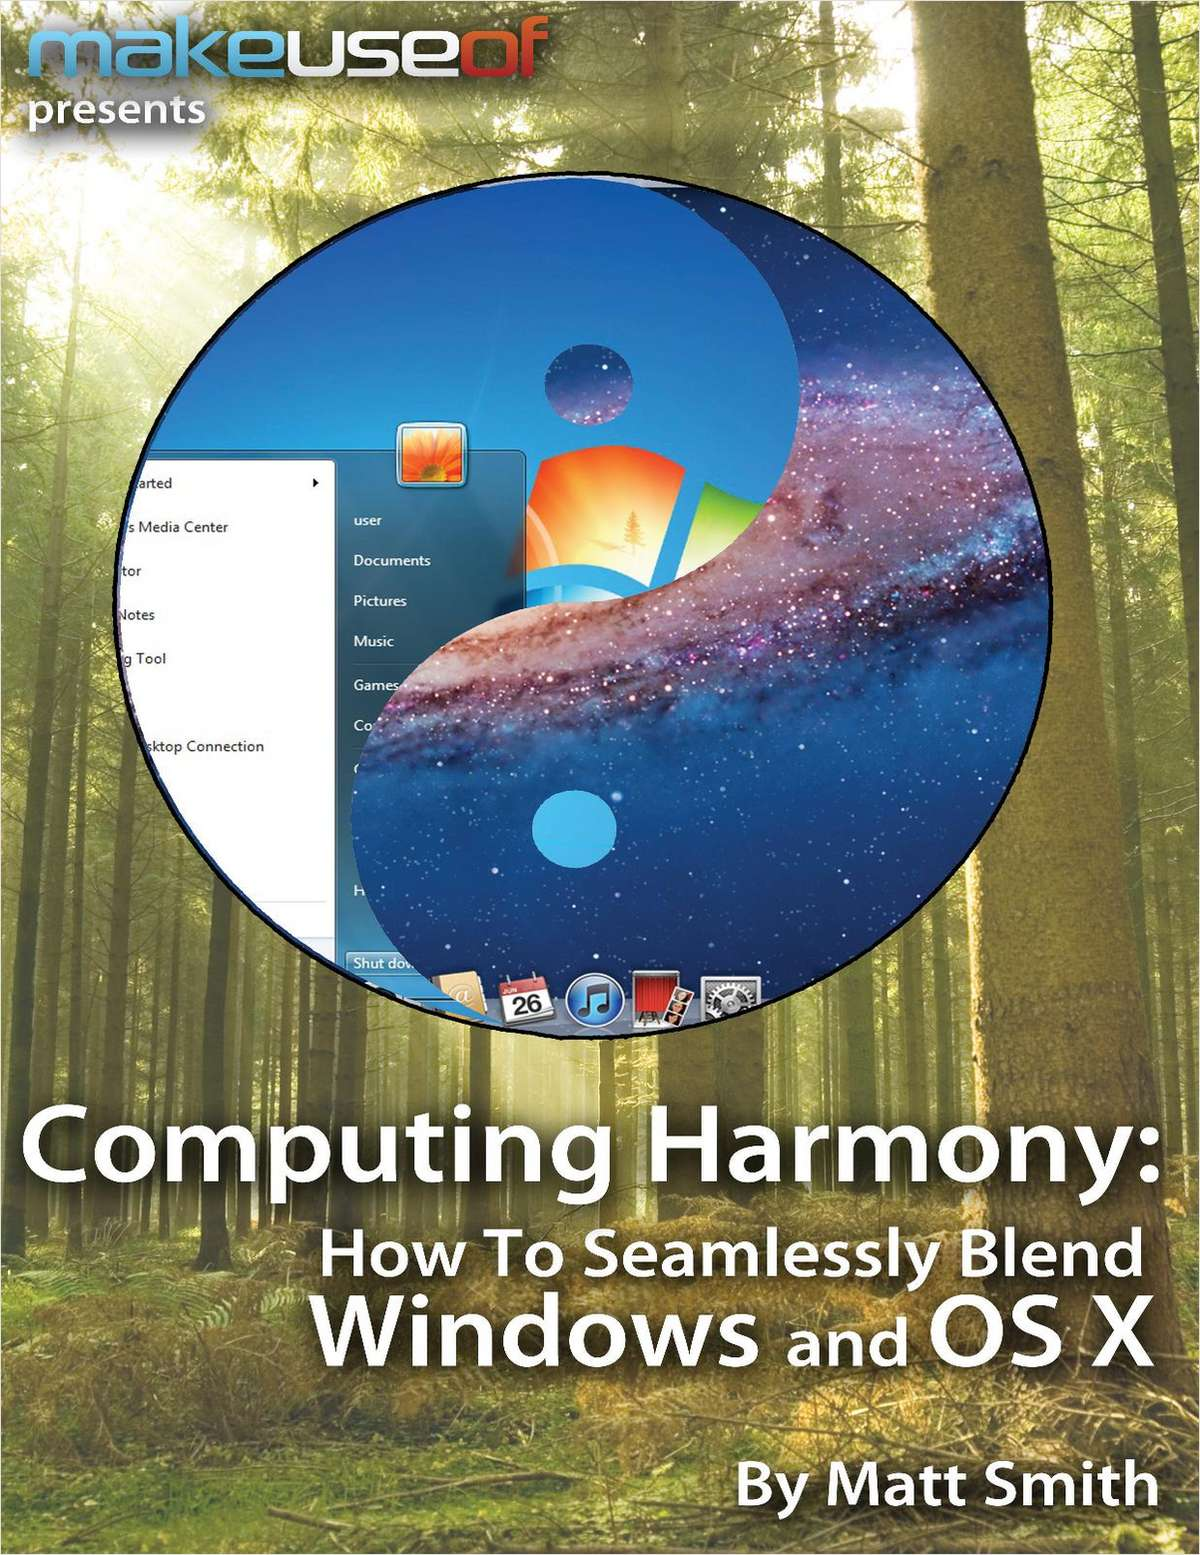 Computing Harmony: How To Seamlessly Blend Windows and OS X